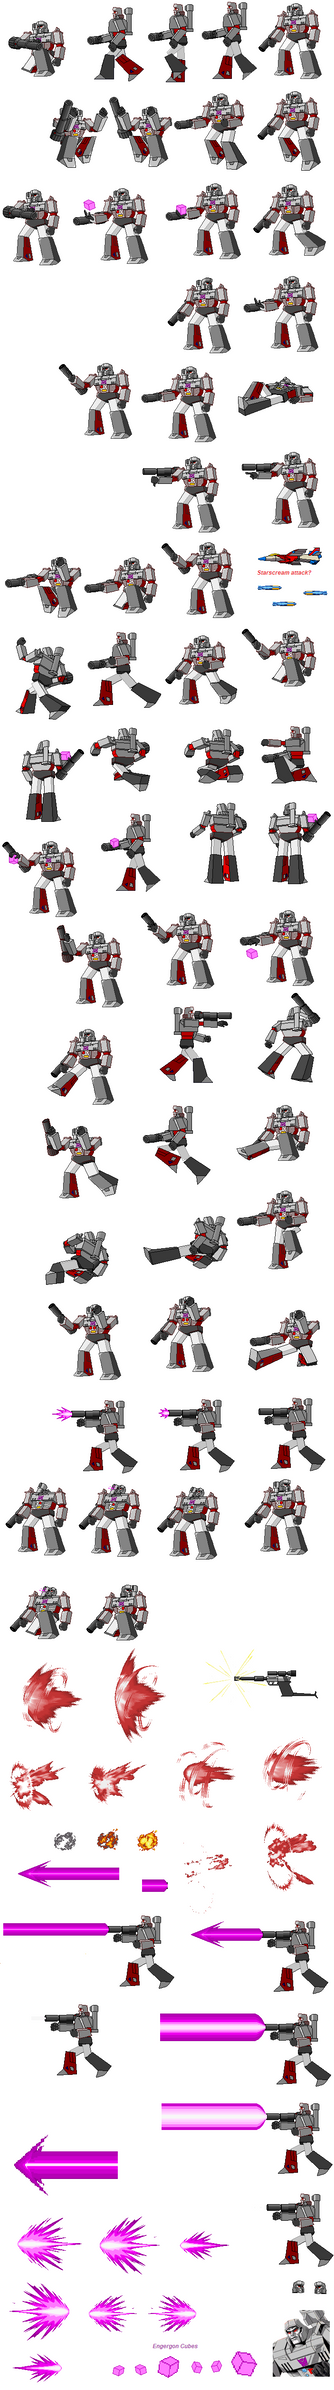 Megatron (Other Way) by Skyscream1 by skyscream1